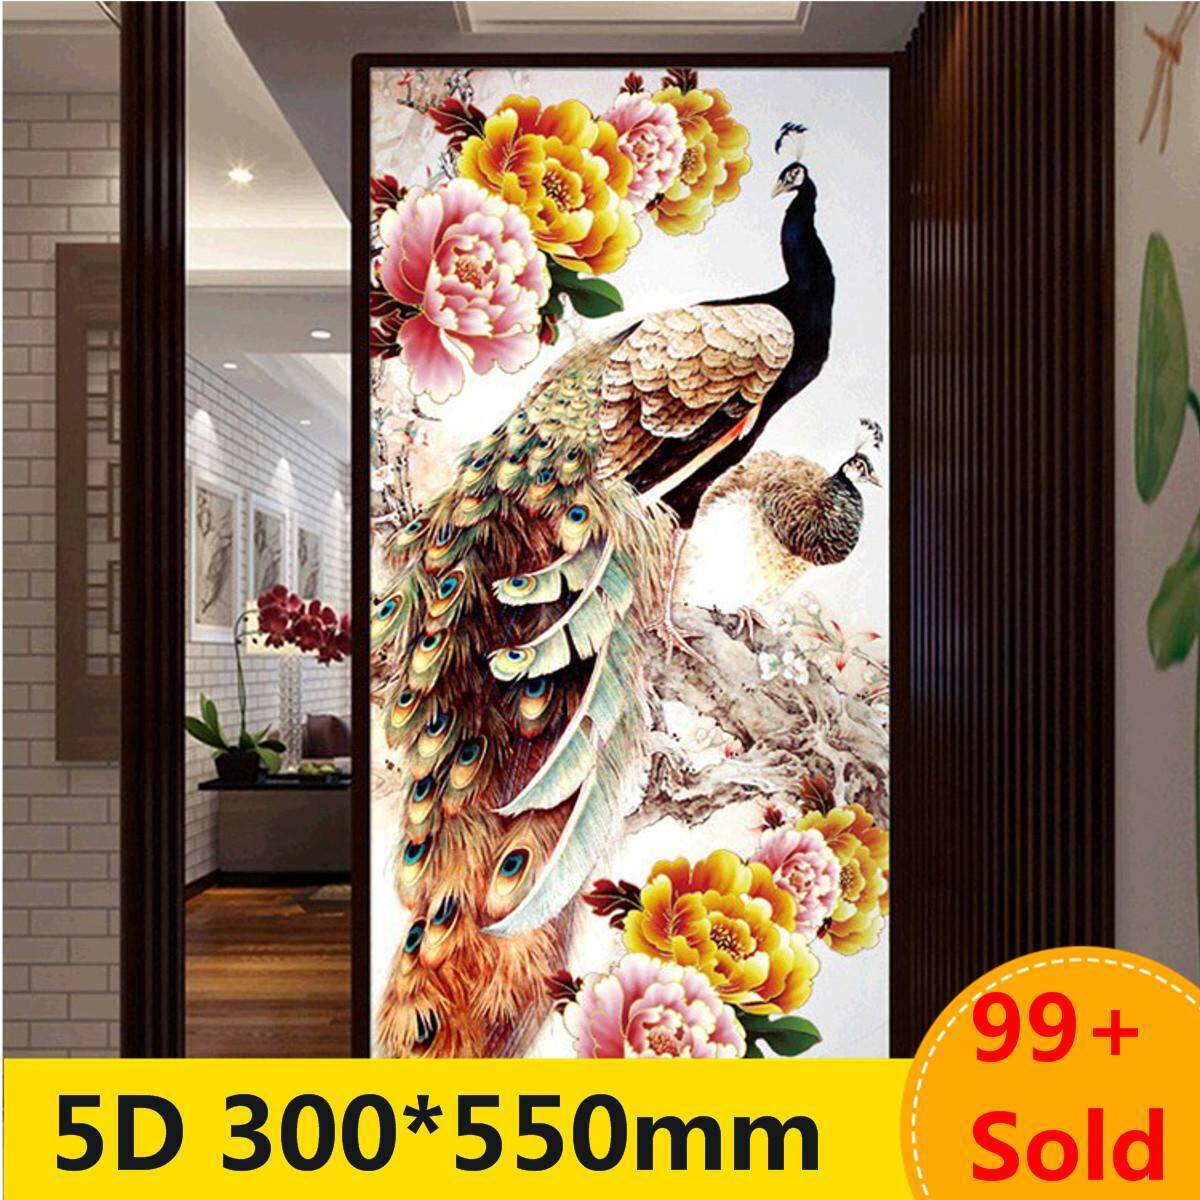 Wall Design For Sale Wall Art Prices Brands Review In